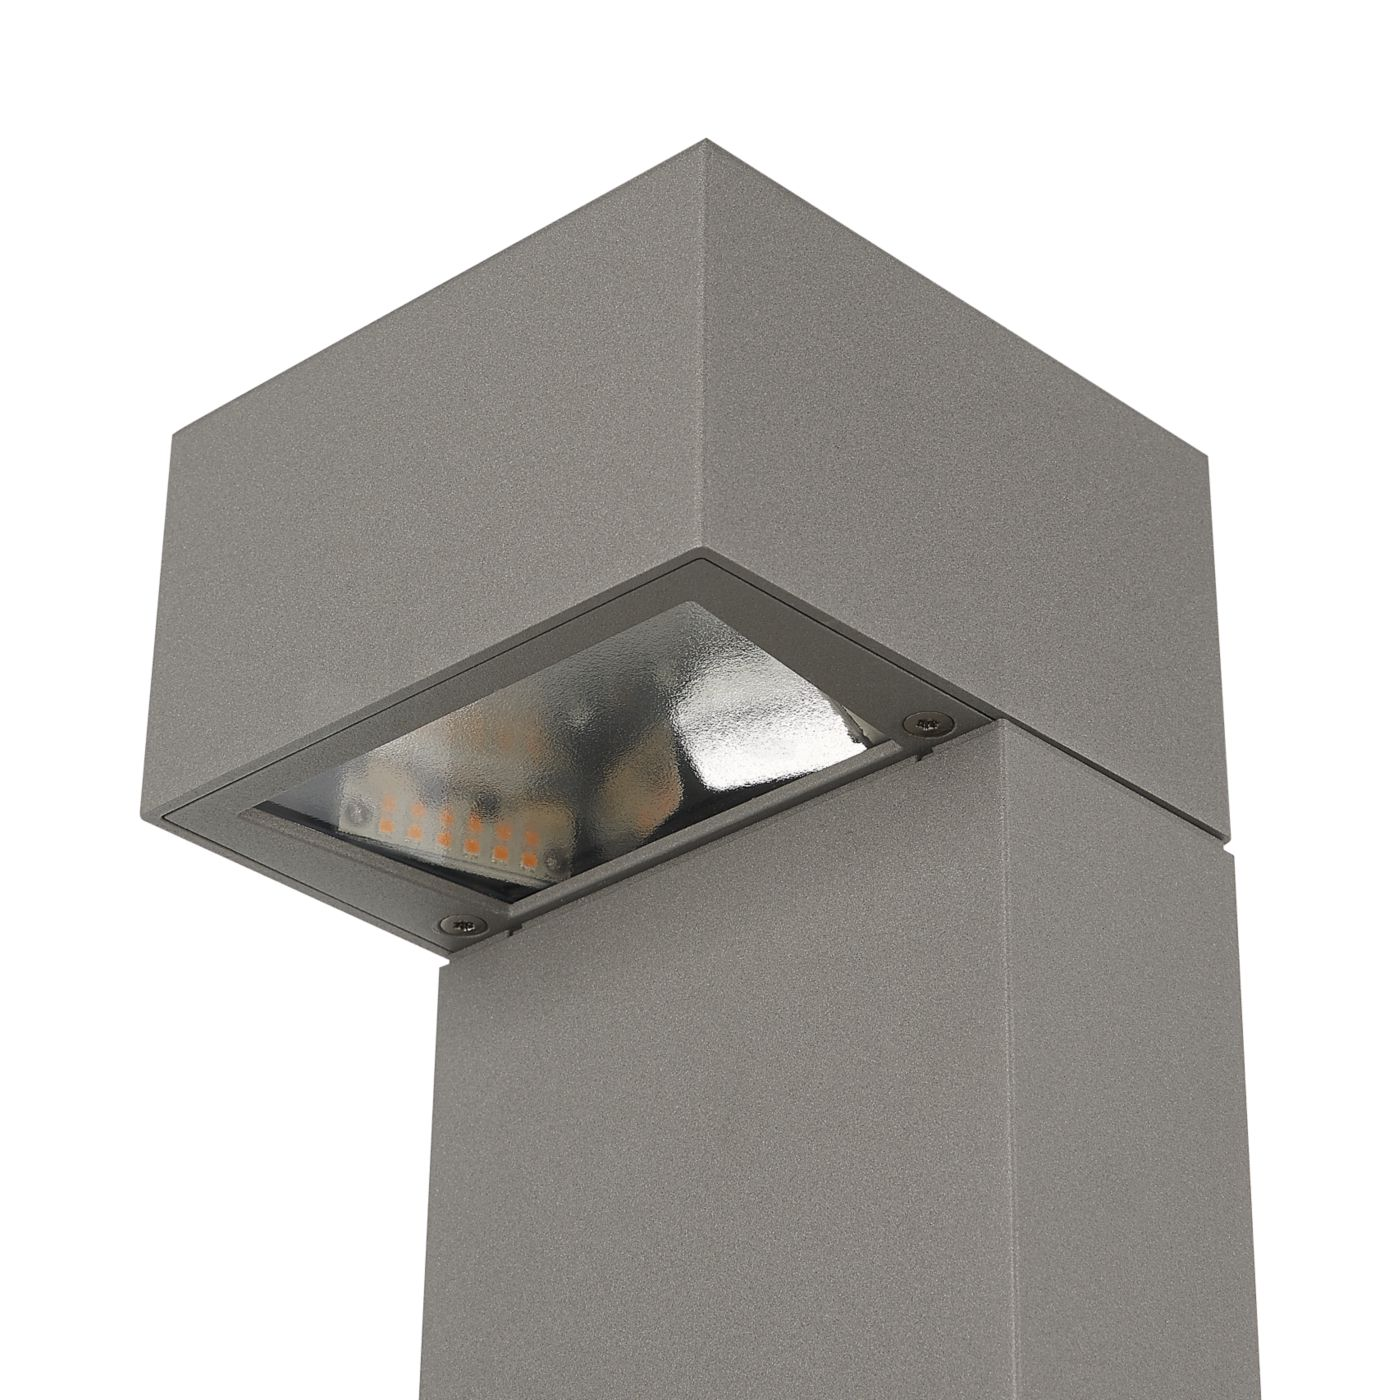 buy bega 88659 bollard light led at